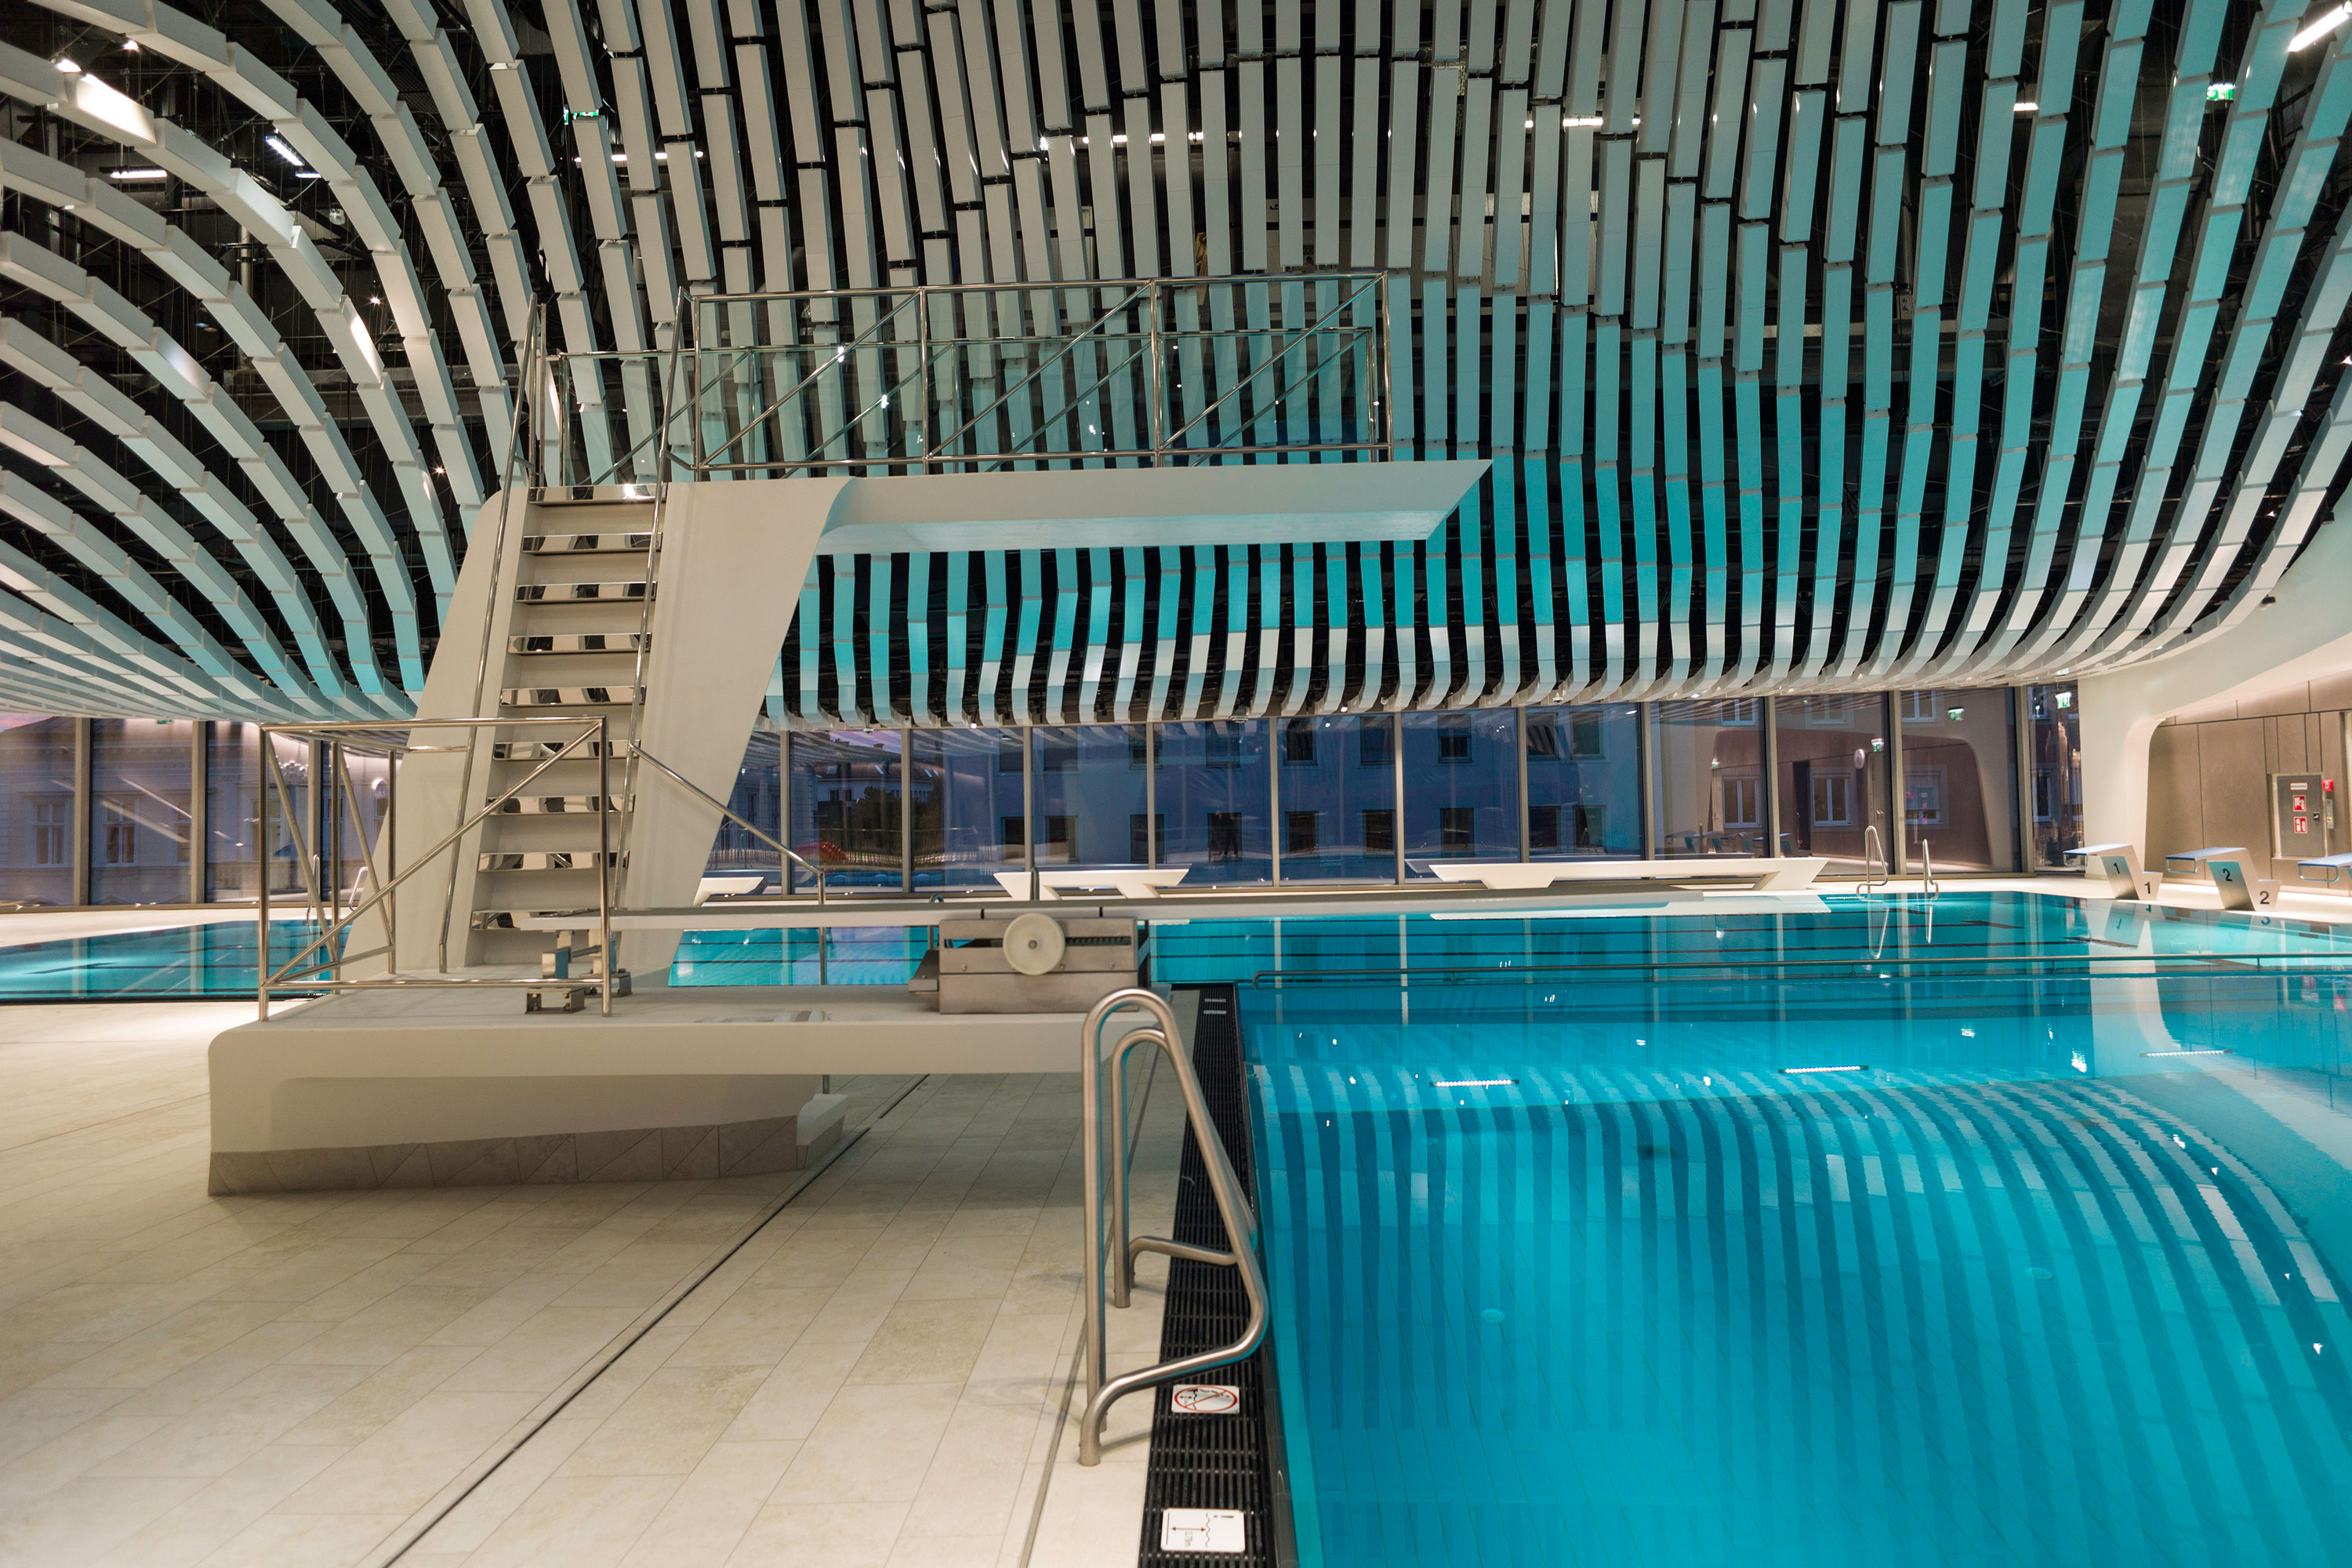 Paracelsus Bad & Kurhaus in Salzburg, jump and swimming pool. Photo: Berger+Parkkinen Architekten